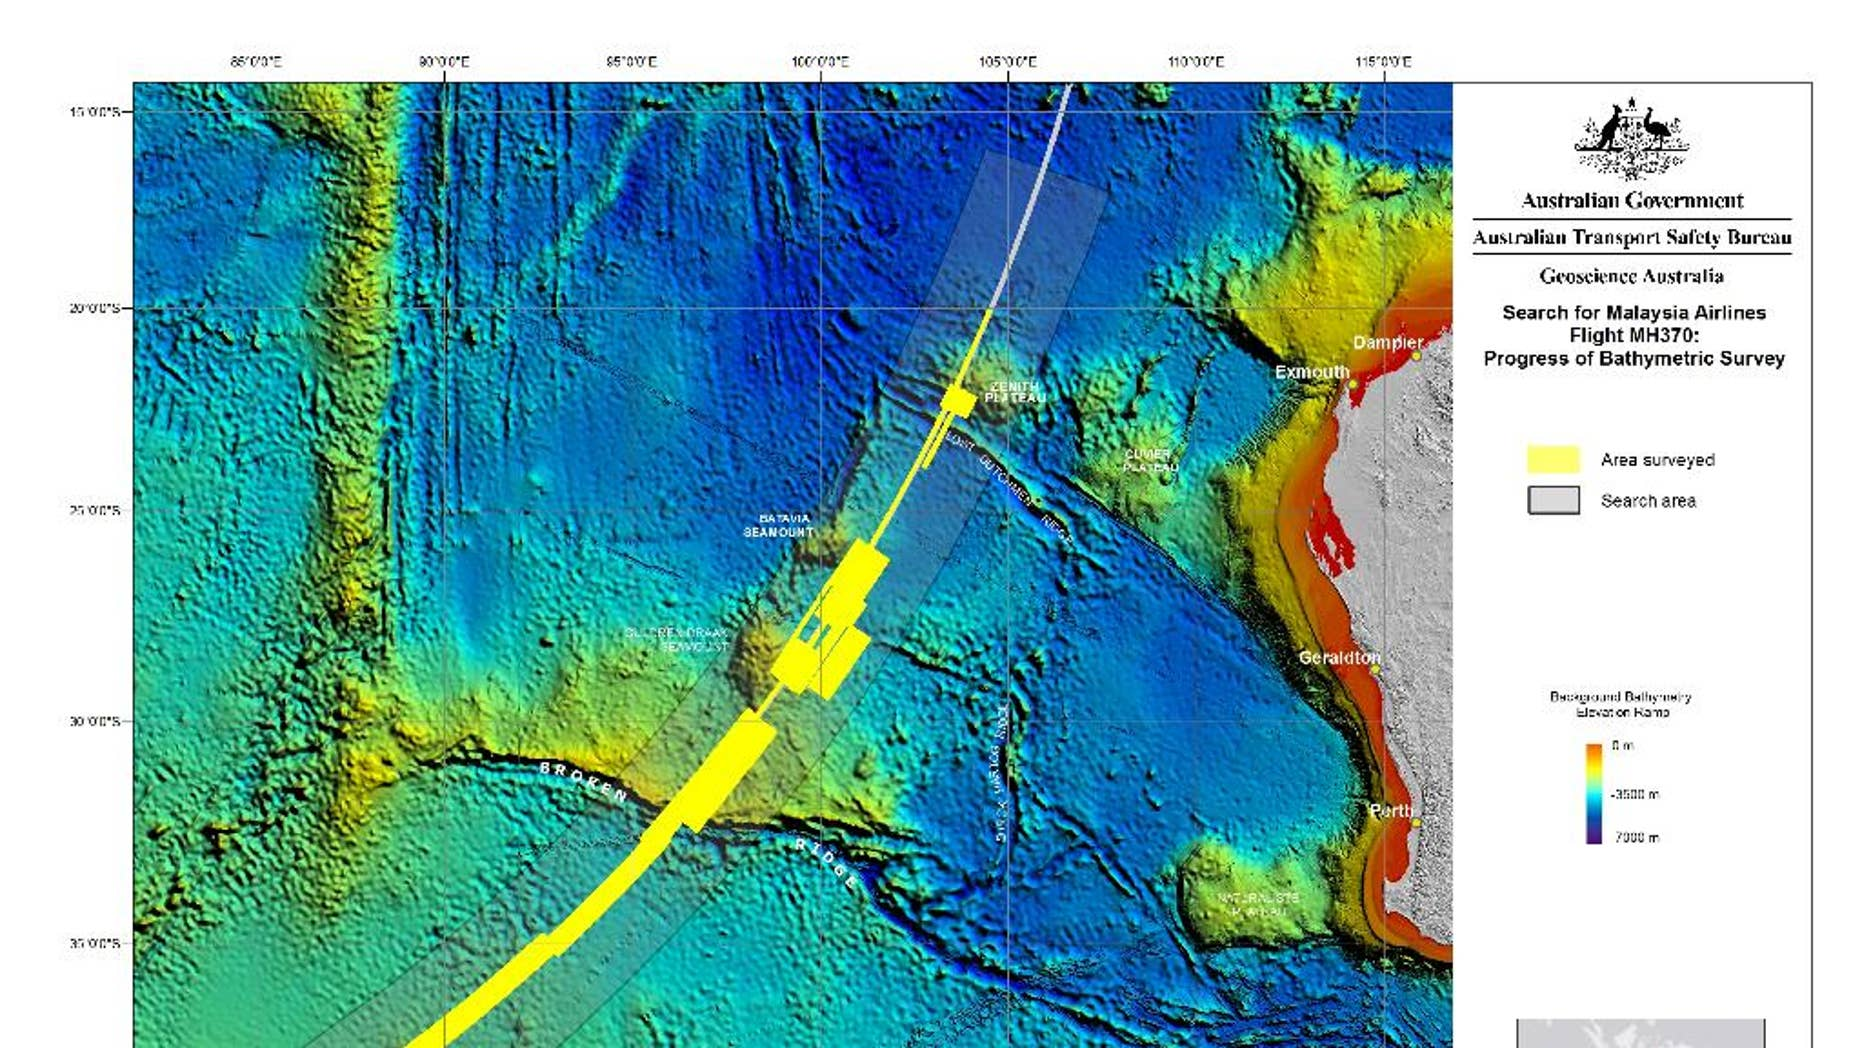 This map provided Wednesday, Oct. 22, 2014, by The Australian Transport Safety Bureau shows the area surveyed so far is marked in yellow in the search for the missing Malaysia Airlines Flight 370 in the southern Indian Ocean. The hunt for the passenger plane in a remote patch of the Indian Ocean is progressing well but will likely take many months because of the huge area involved, an Australian official said Friday, Oct. 24. Peter Foley, an Australian search coordinator, said there is optimism with two ships using high-tech sonar devices to search for the Boeing 777, which disappeared in March while flying from Kuala Lumpur to Beijing with 239 people on board. (AP Photo/The Australian Transport Safety Bureau) EDITORIAL USE ONLY